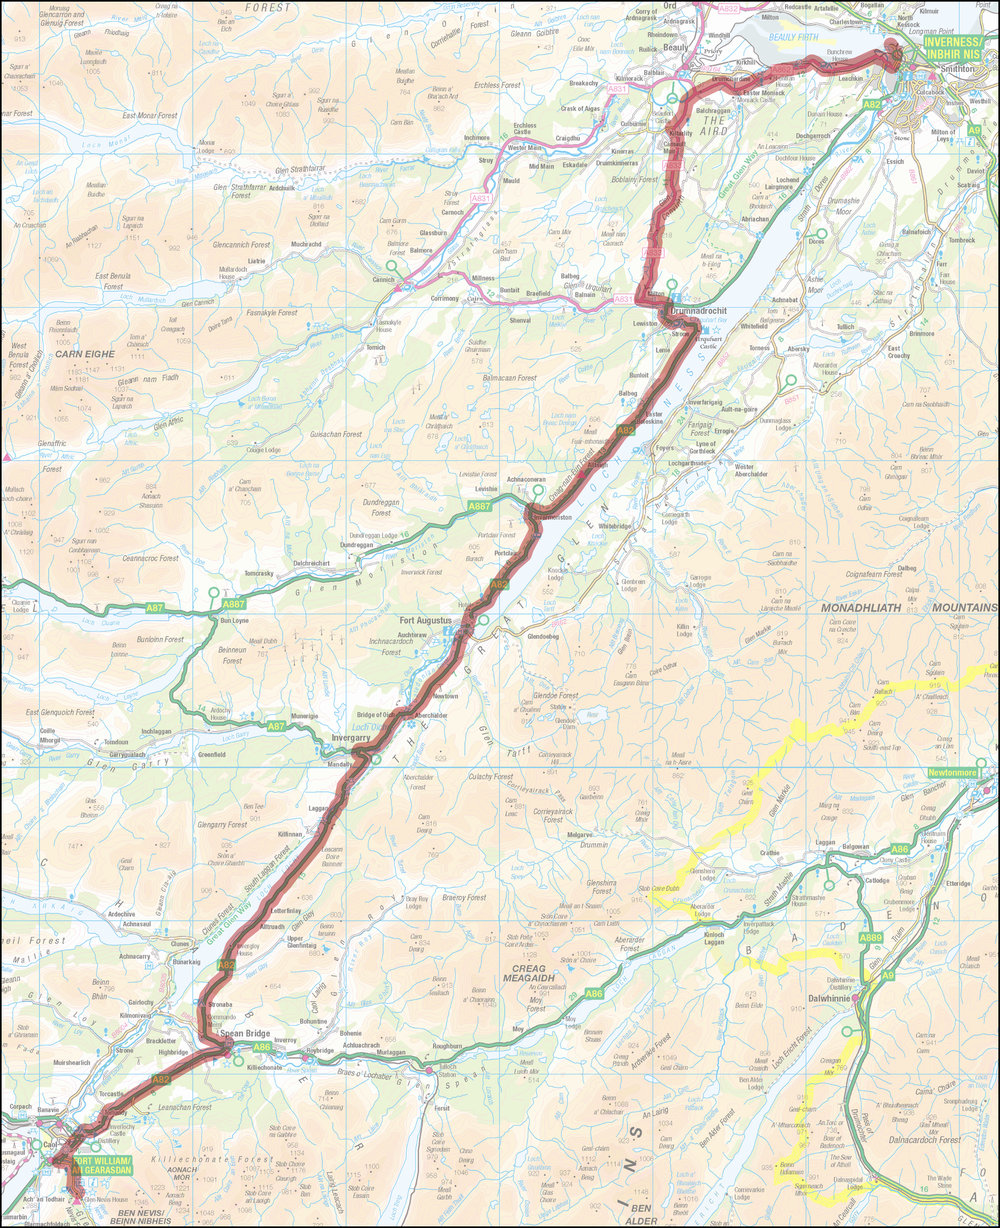 01_Moray Firth to Glen Nevis_Cycle.jpg